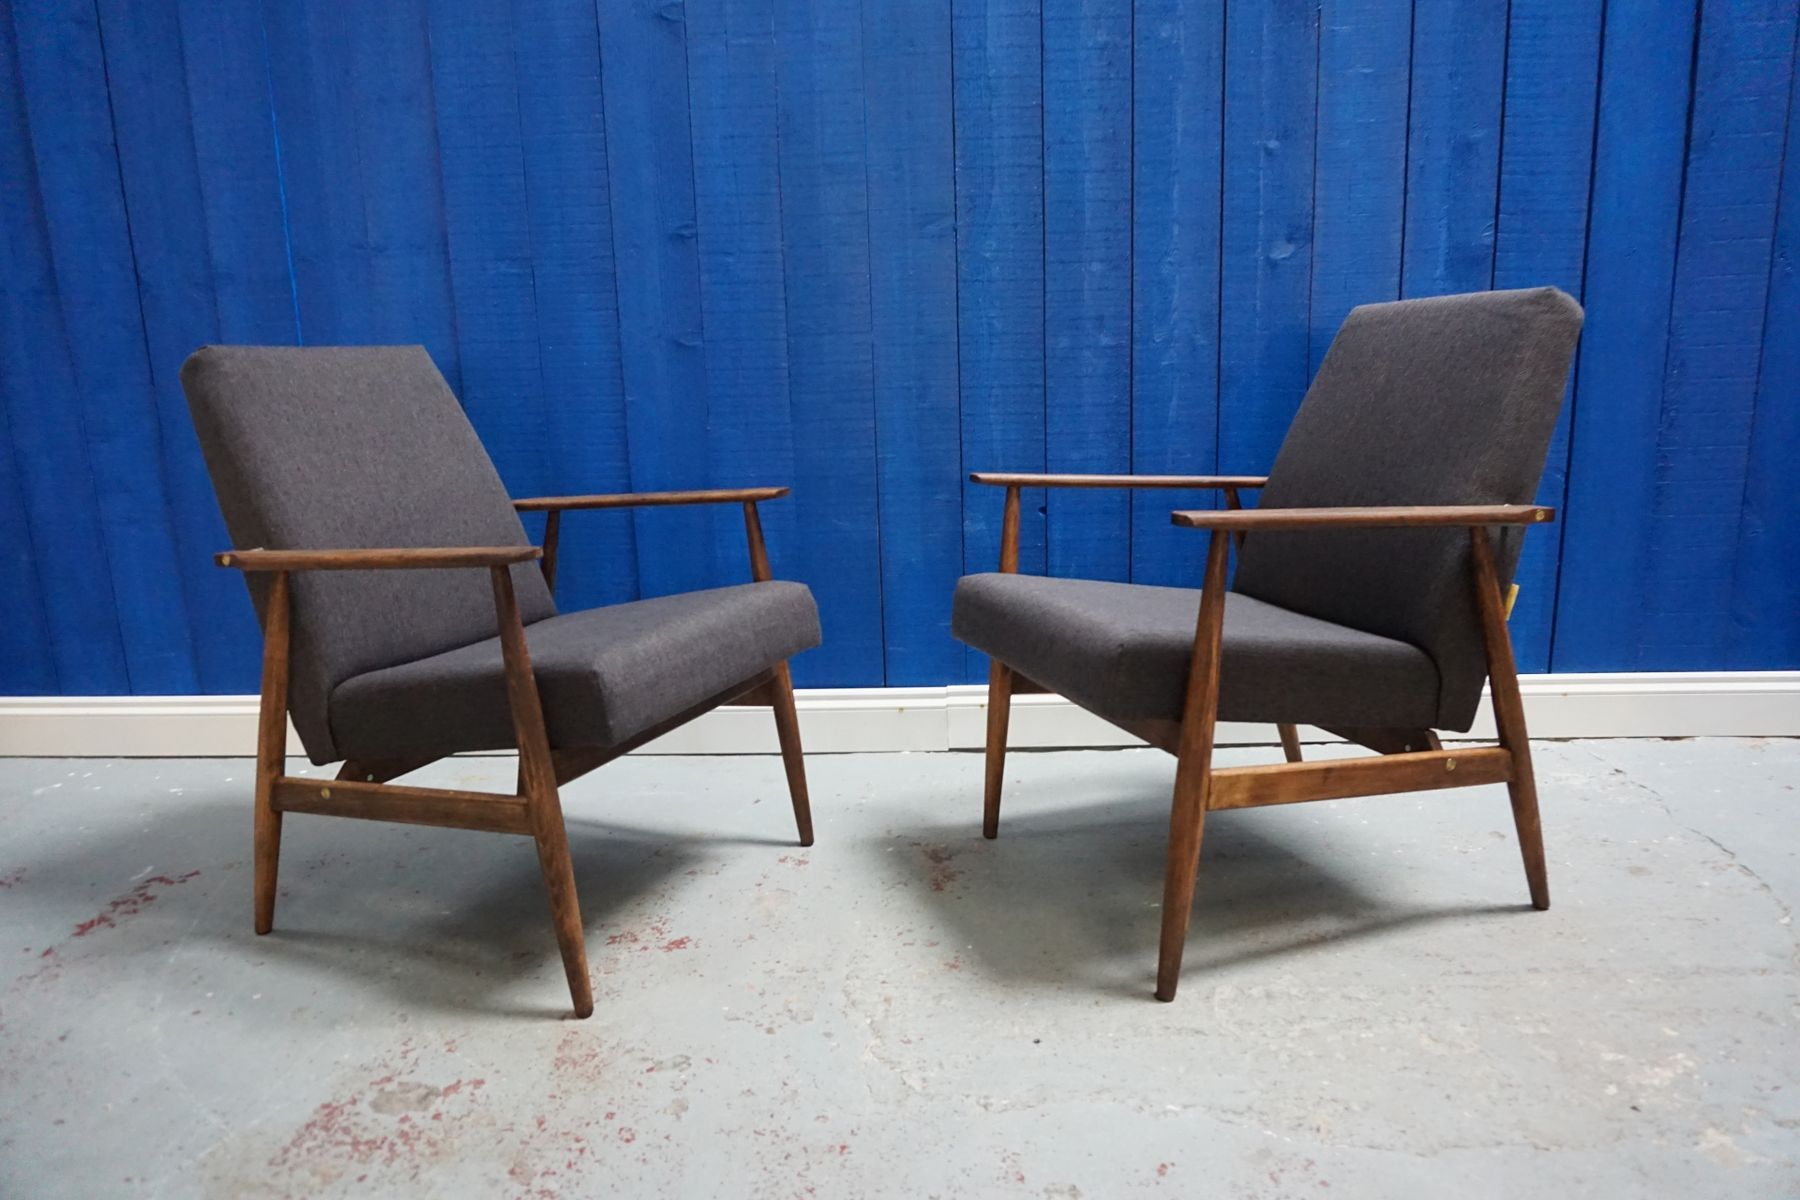 Design Tv Sessel Dunkelgrauer Vintage Sessel Von H Lis 1970er 2er Set In